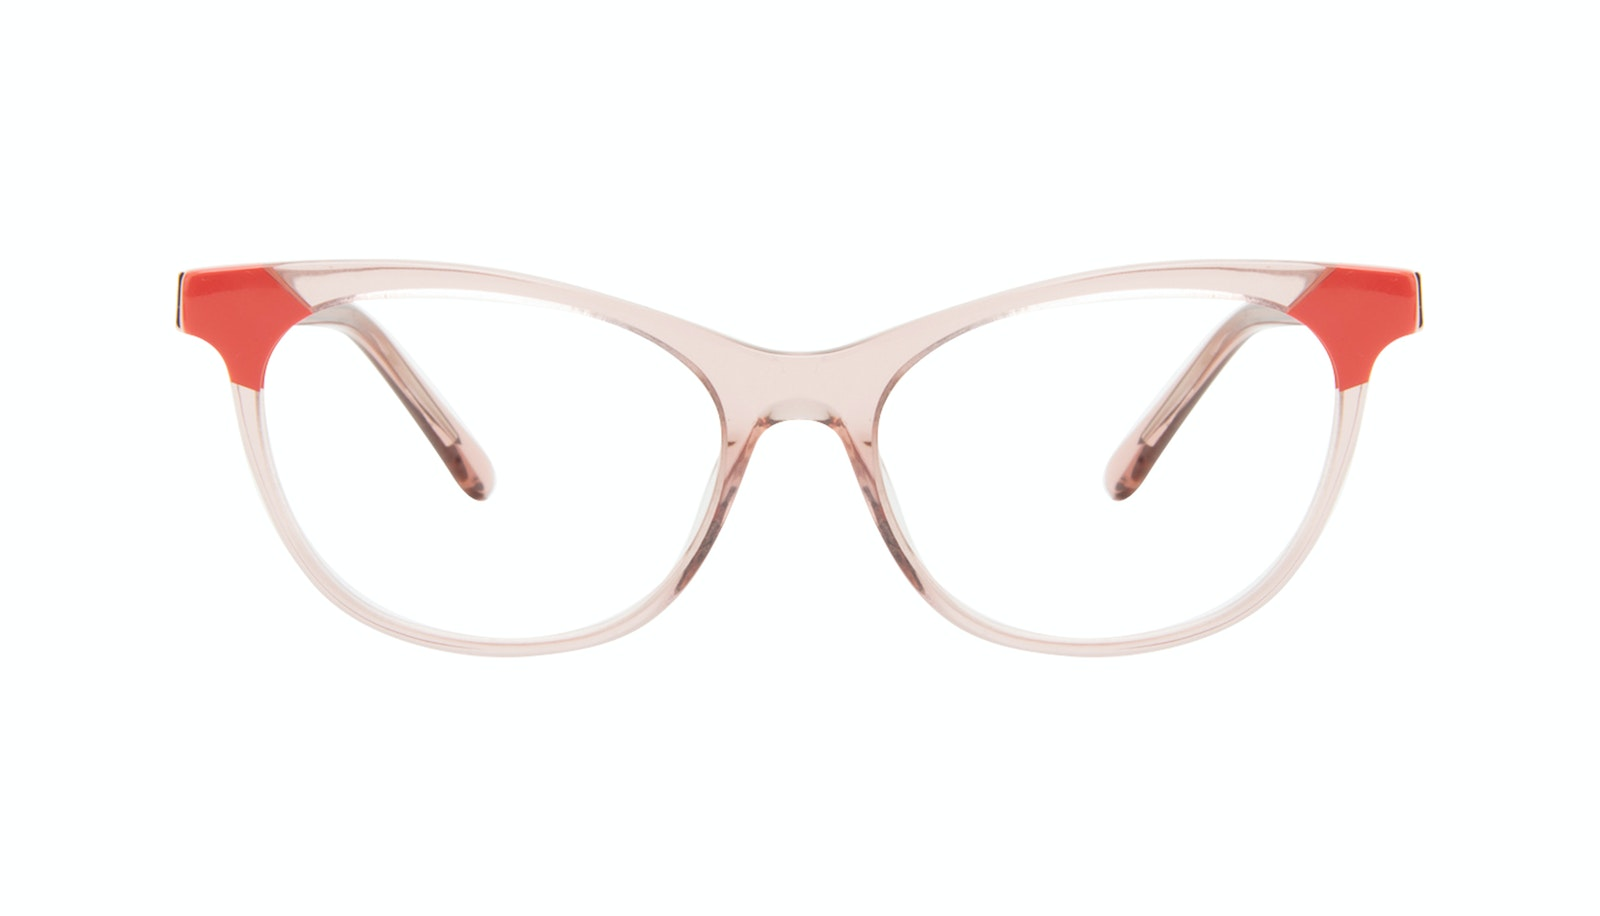 c50c1101af78 Affordable Fashion Glasses Cat Eye Eyeglasses Women Witty Pink Coral